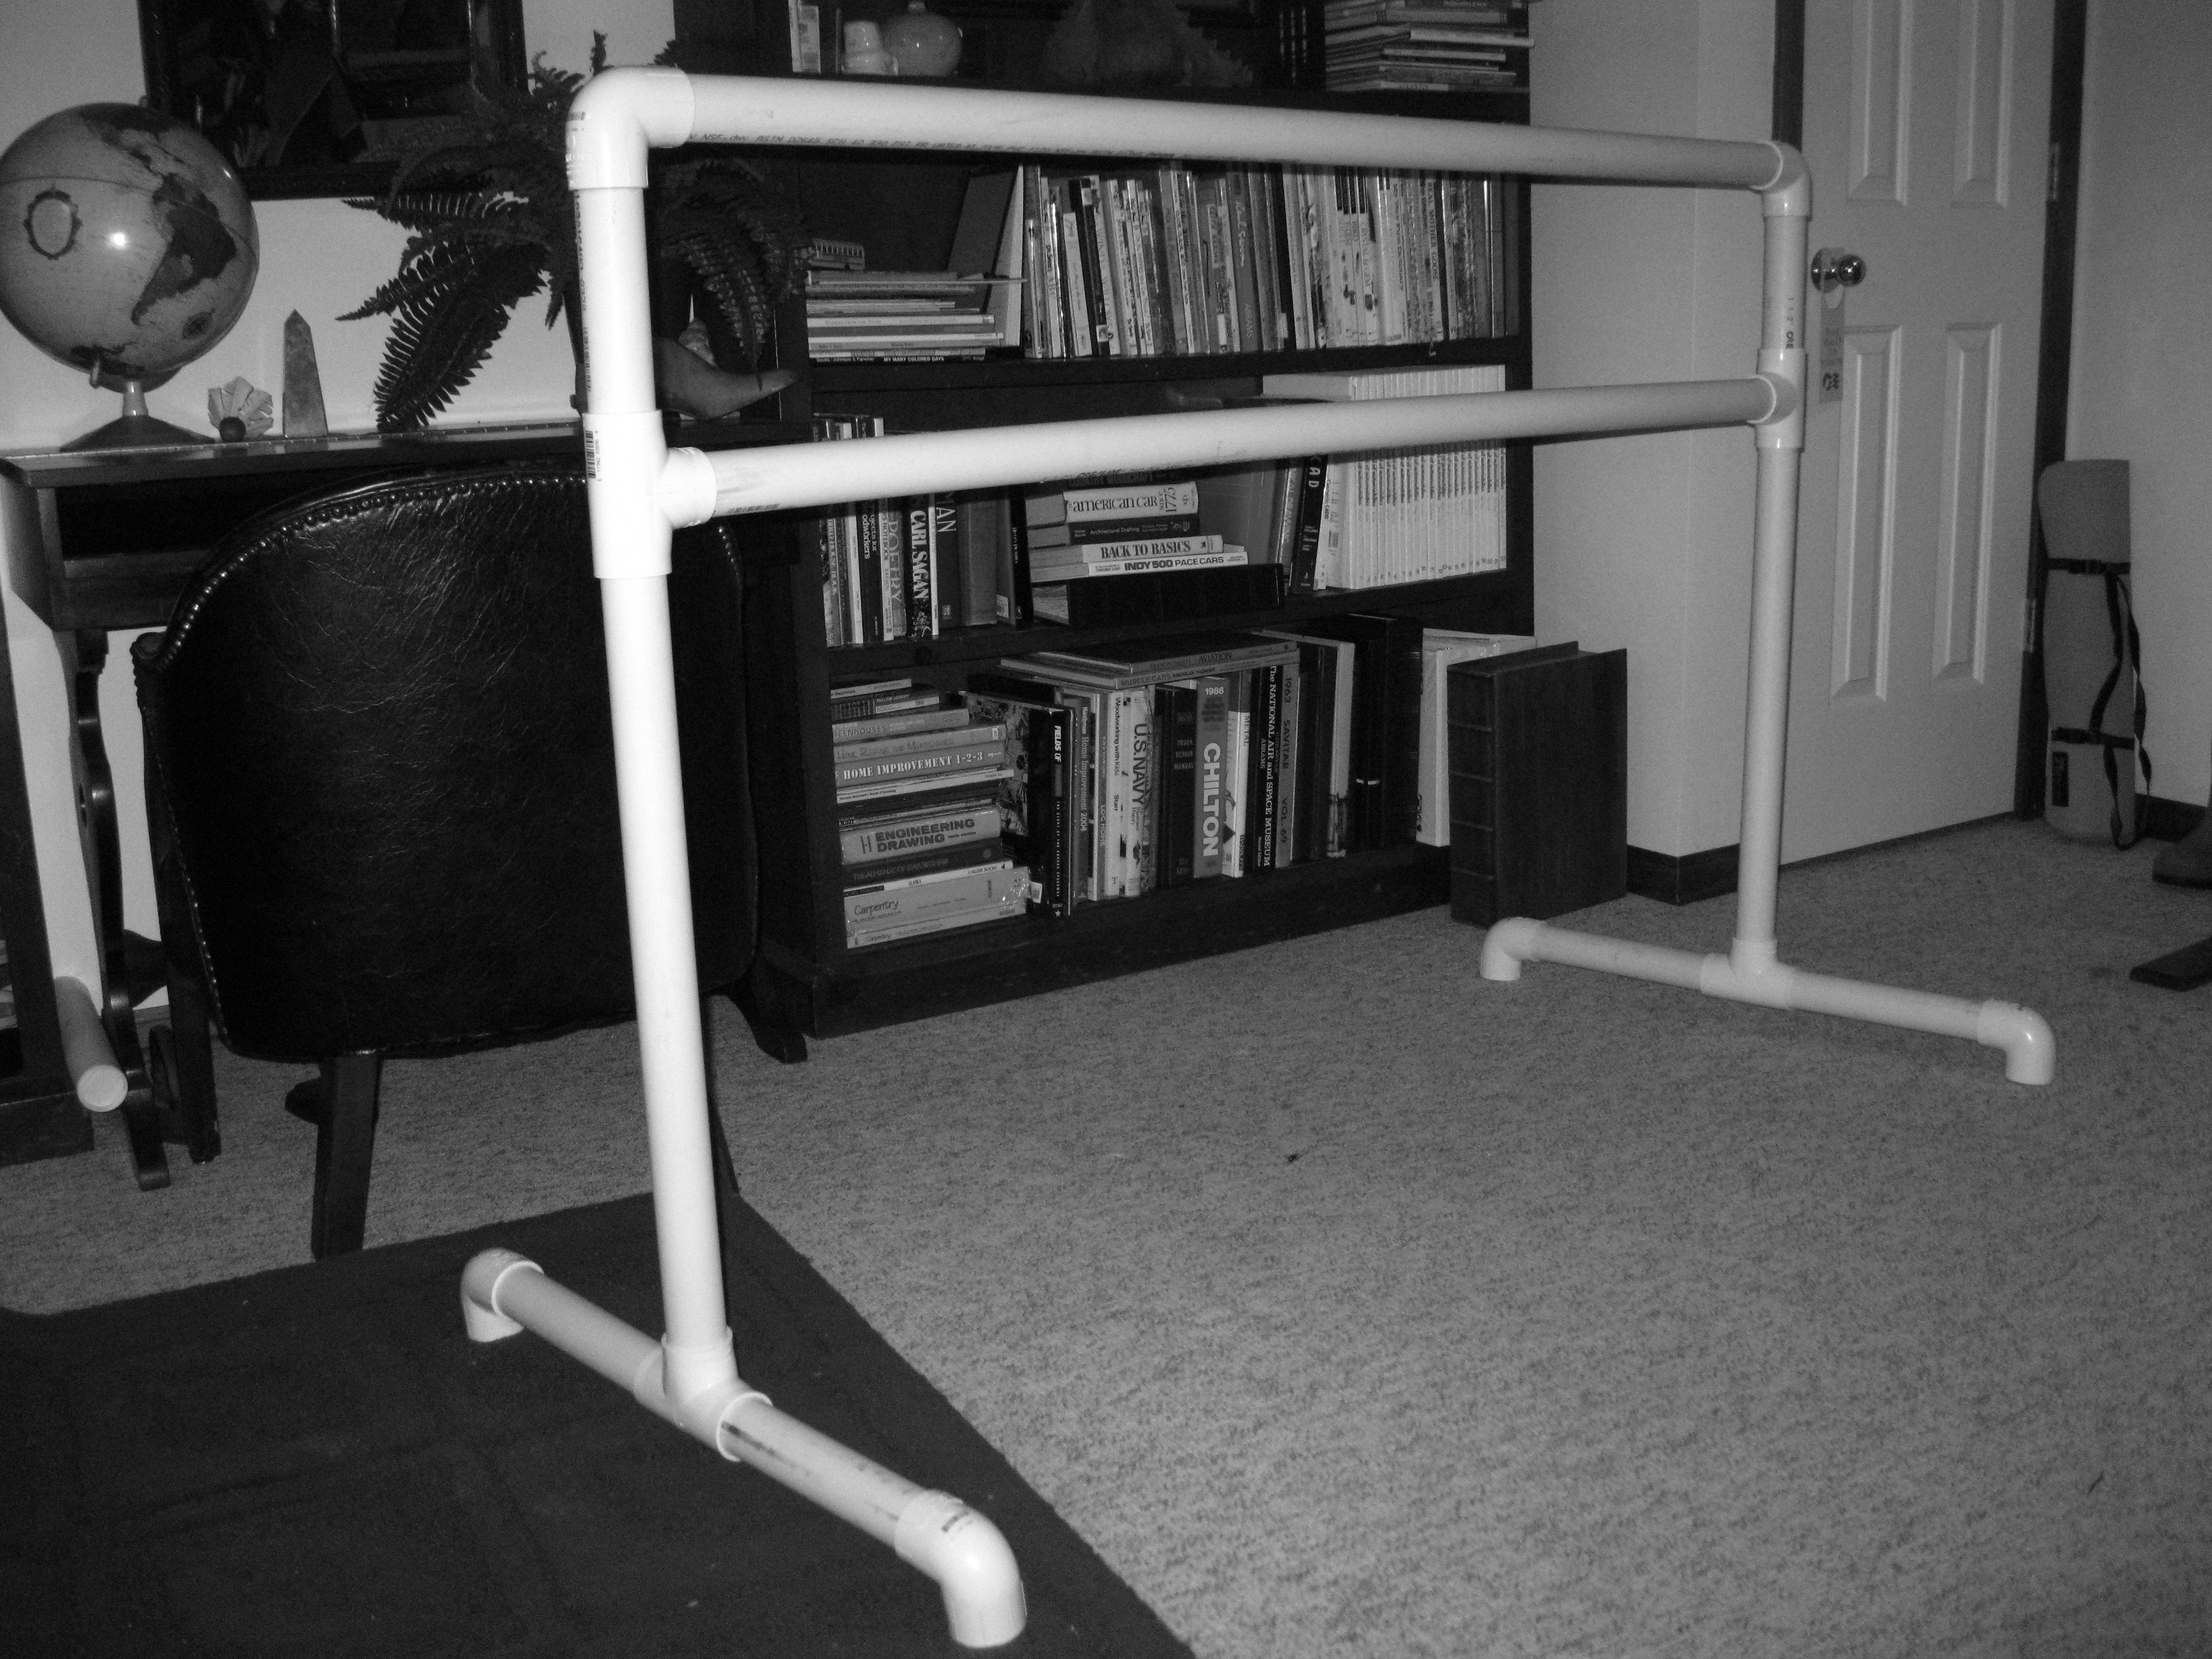 //leotardsandthebunsinthem.files.wordpress.com/2011/09/barre.jpg Making this with a single bar for GG will work as a practice bar for gymnastics. : pvc pipe ballet barre - www.happyfamilyinstitute.com